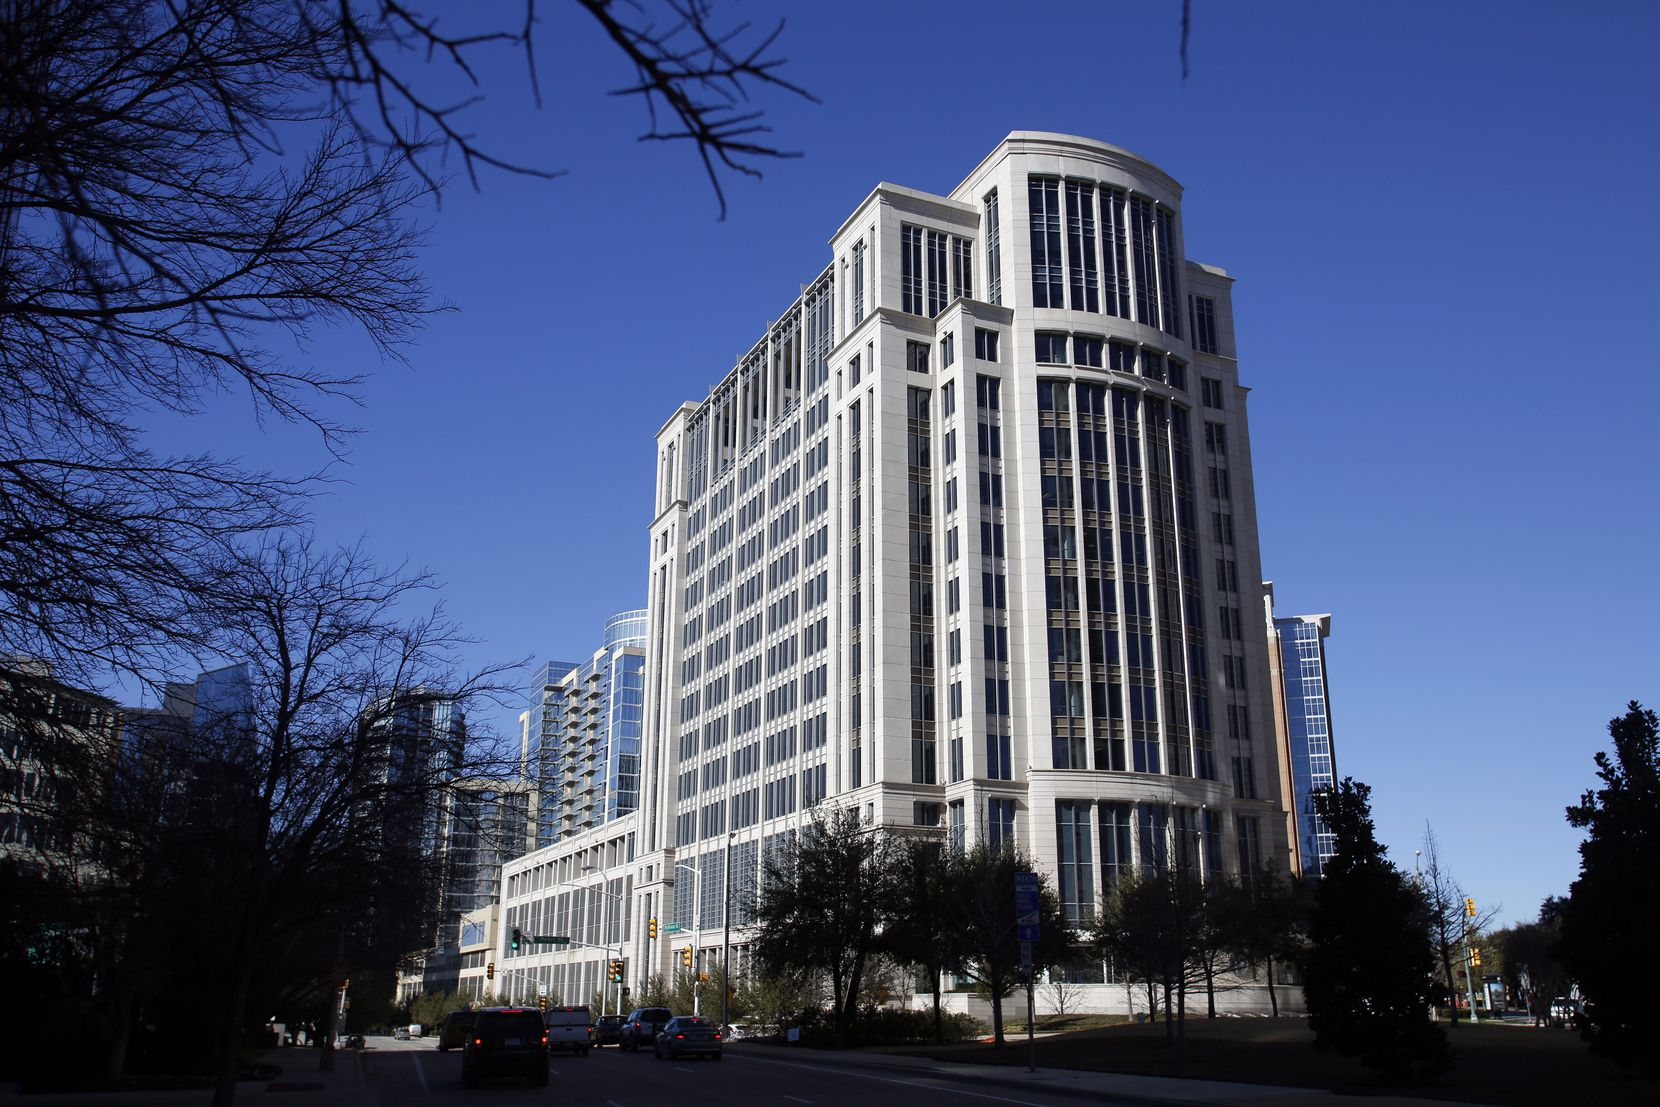 Independent Financial (formerly Independent Bank) is taking office space in the Rosewood Court building on Cedar Springs Road. It plans to hire several hundred more employees in the next two to three years after a failed merger with Texas Capital Bank in the summer of 2020.